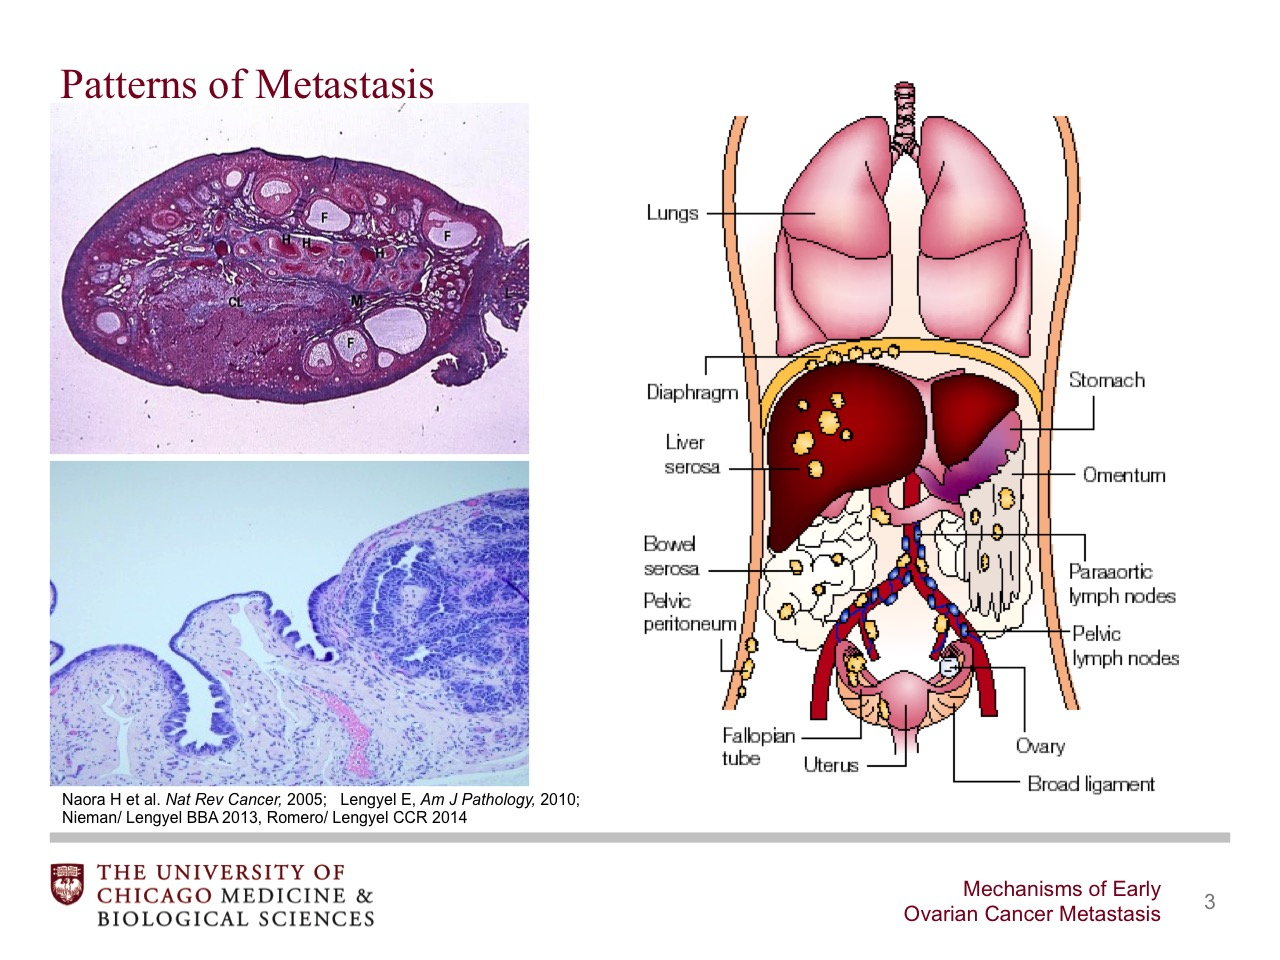 Mechanisms Of Early Ovarian Cancer Metastasis Broadcastmed